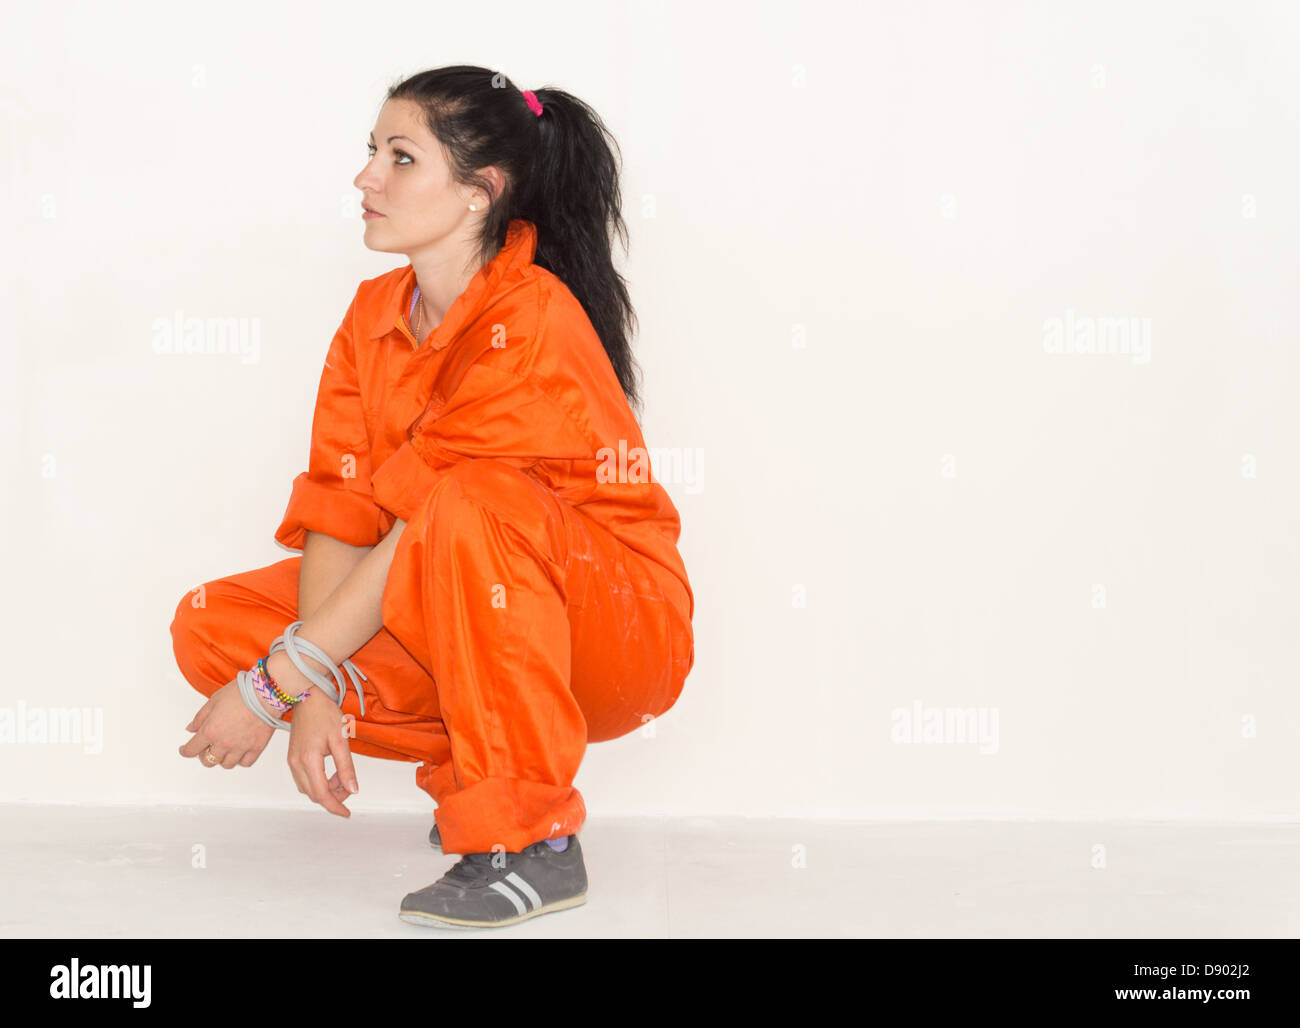 Woman in bright orange overalls squatting down facing left watching something off frame - Stock Image